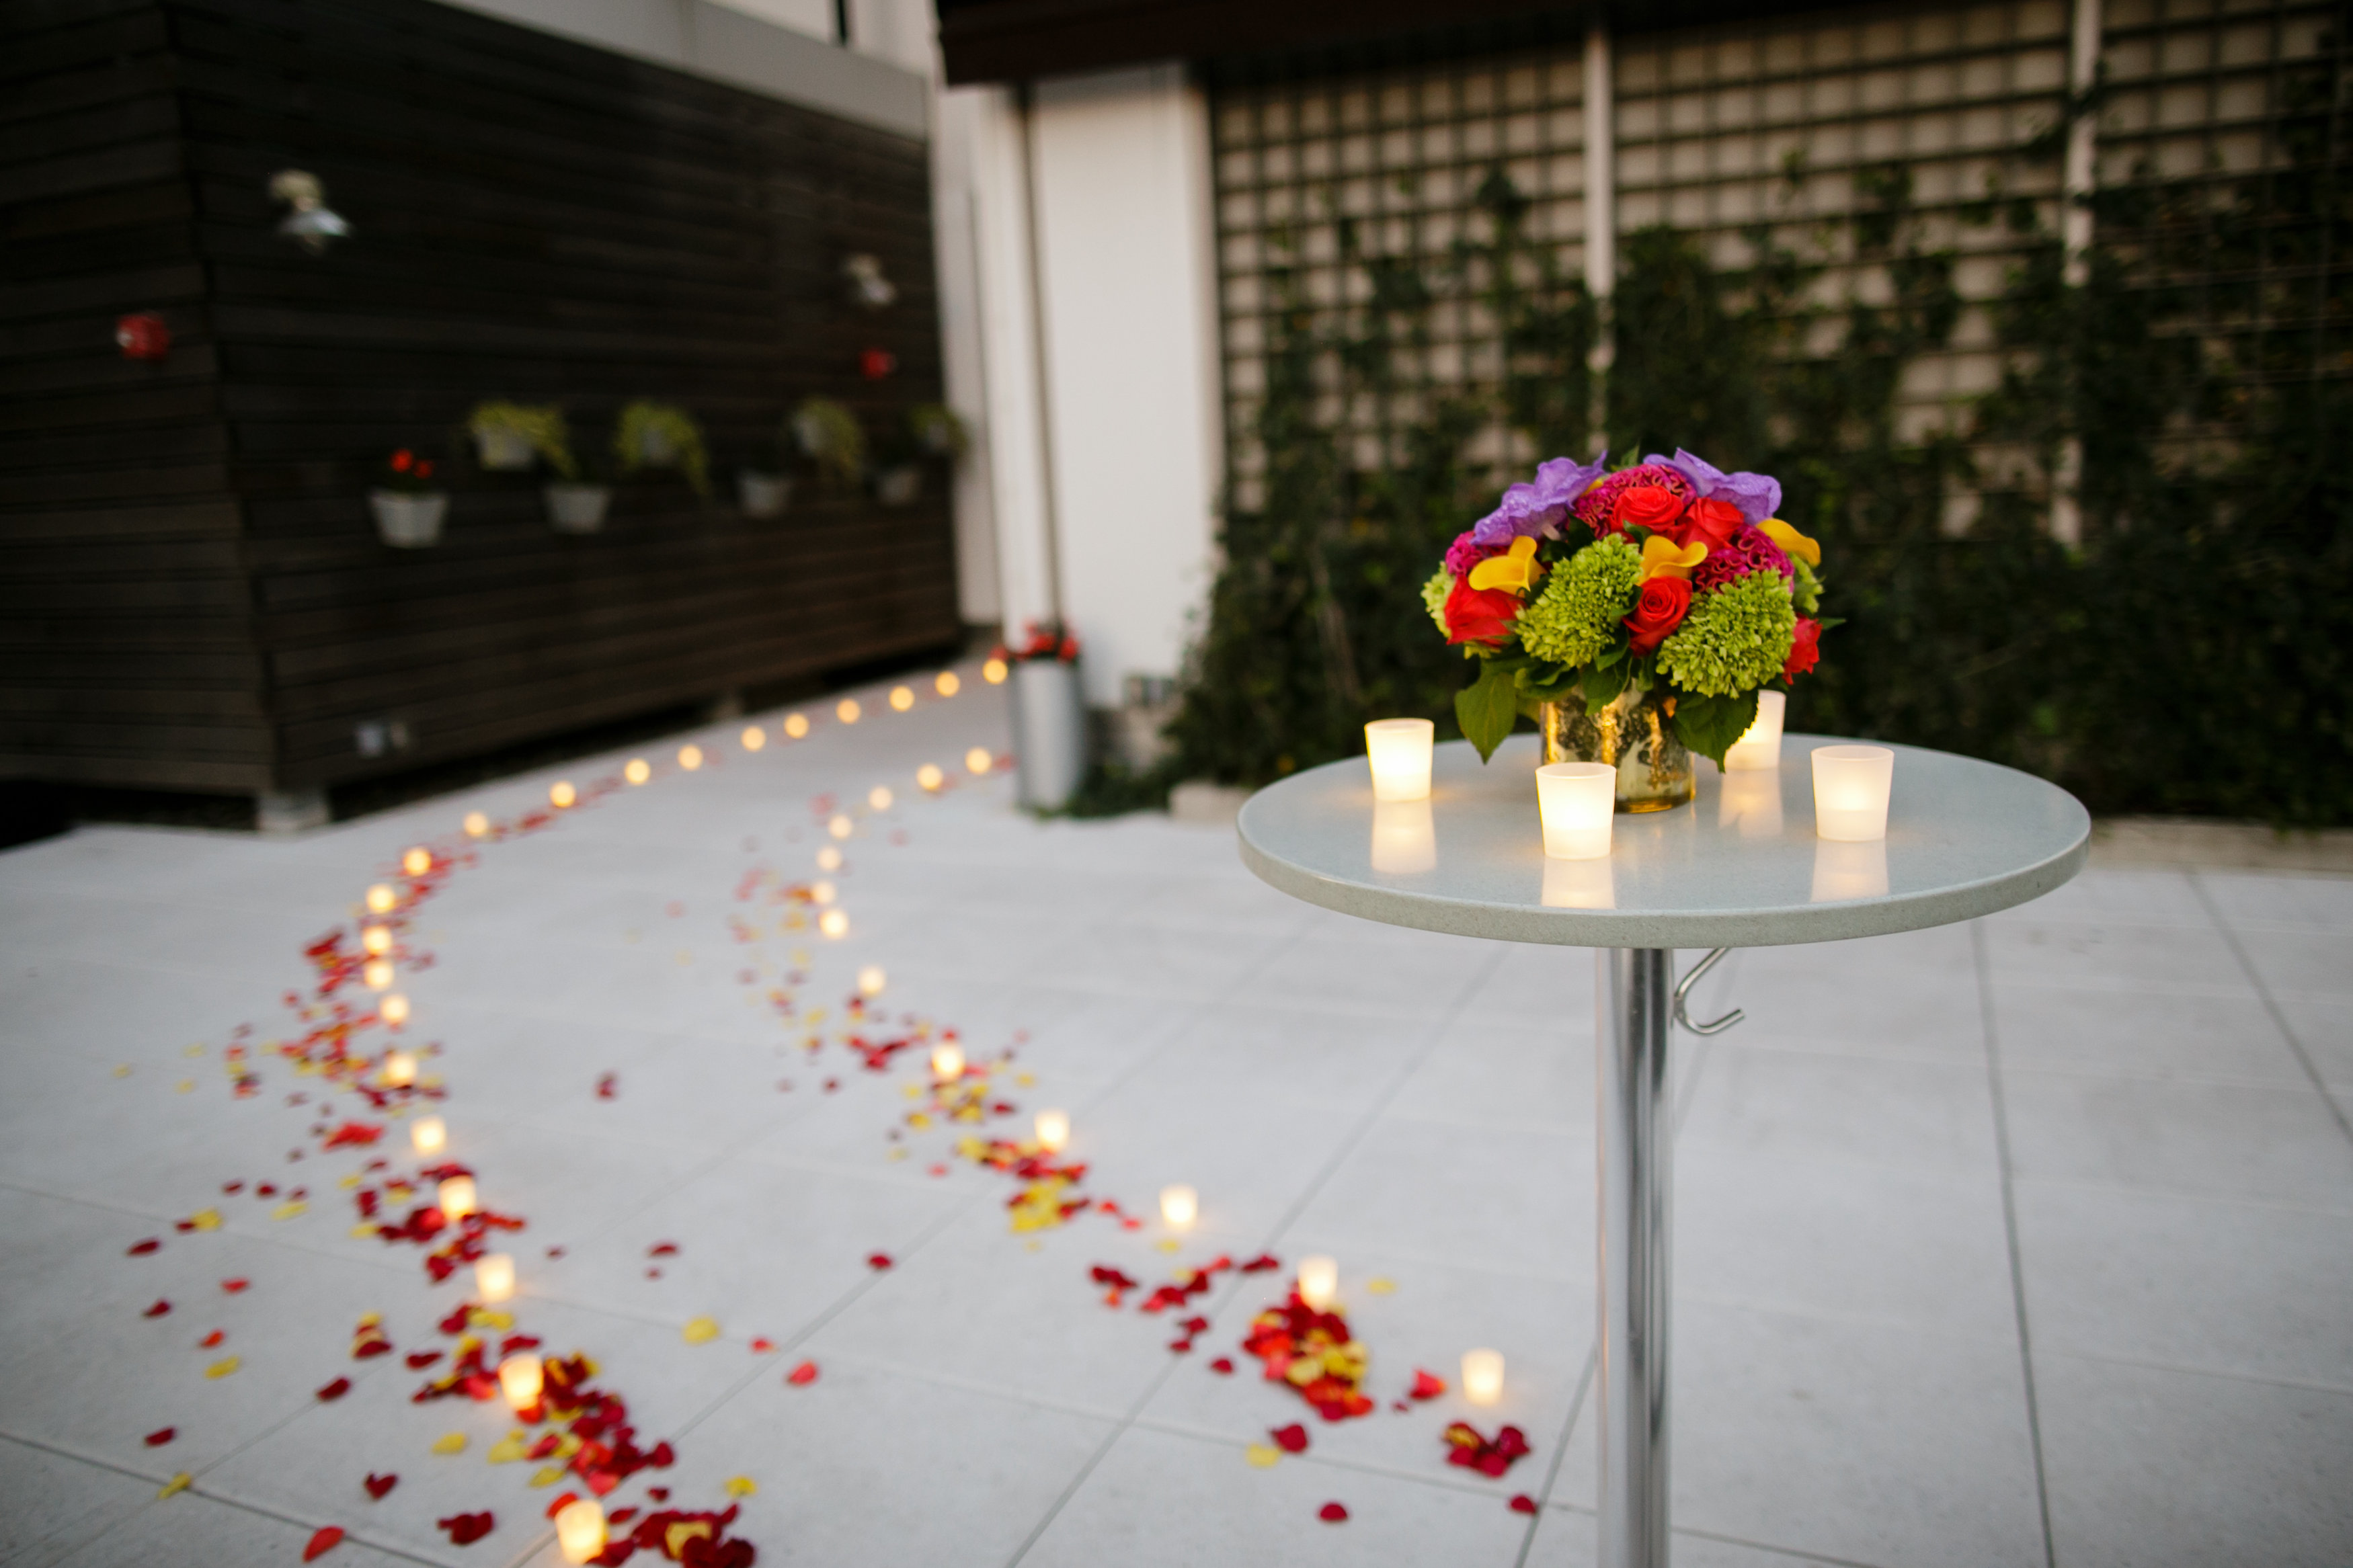 NY-Candle-and-bouquet.jpg